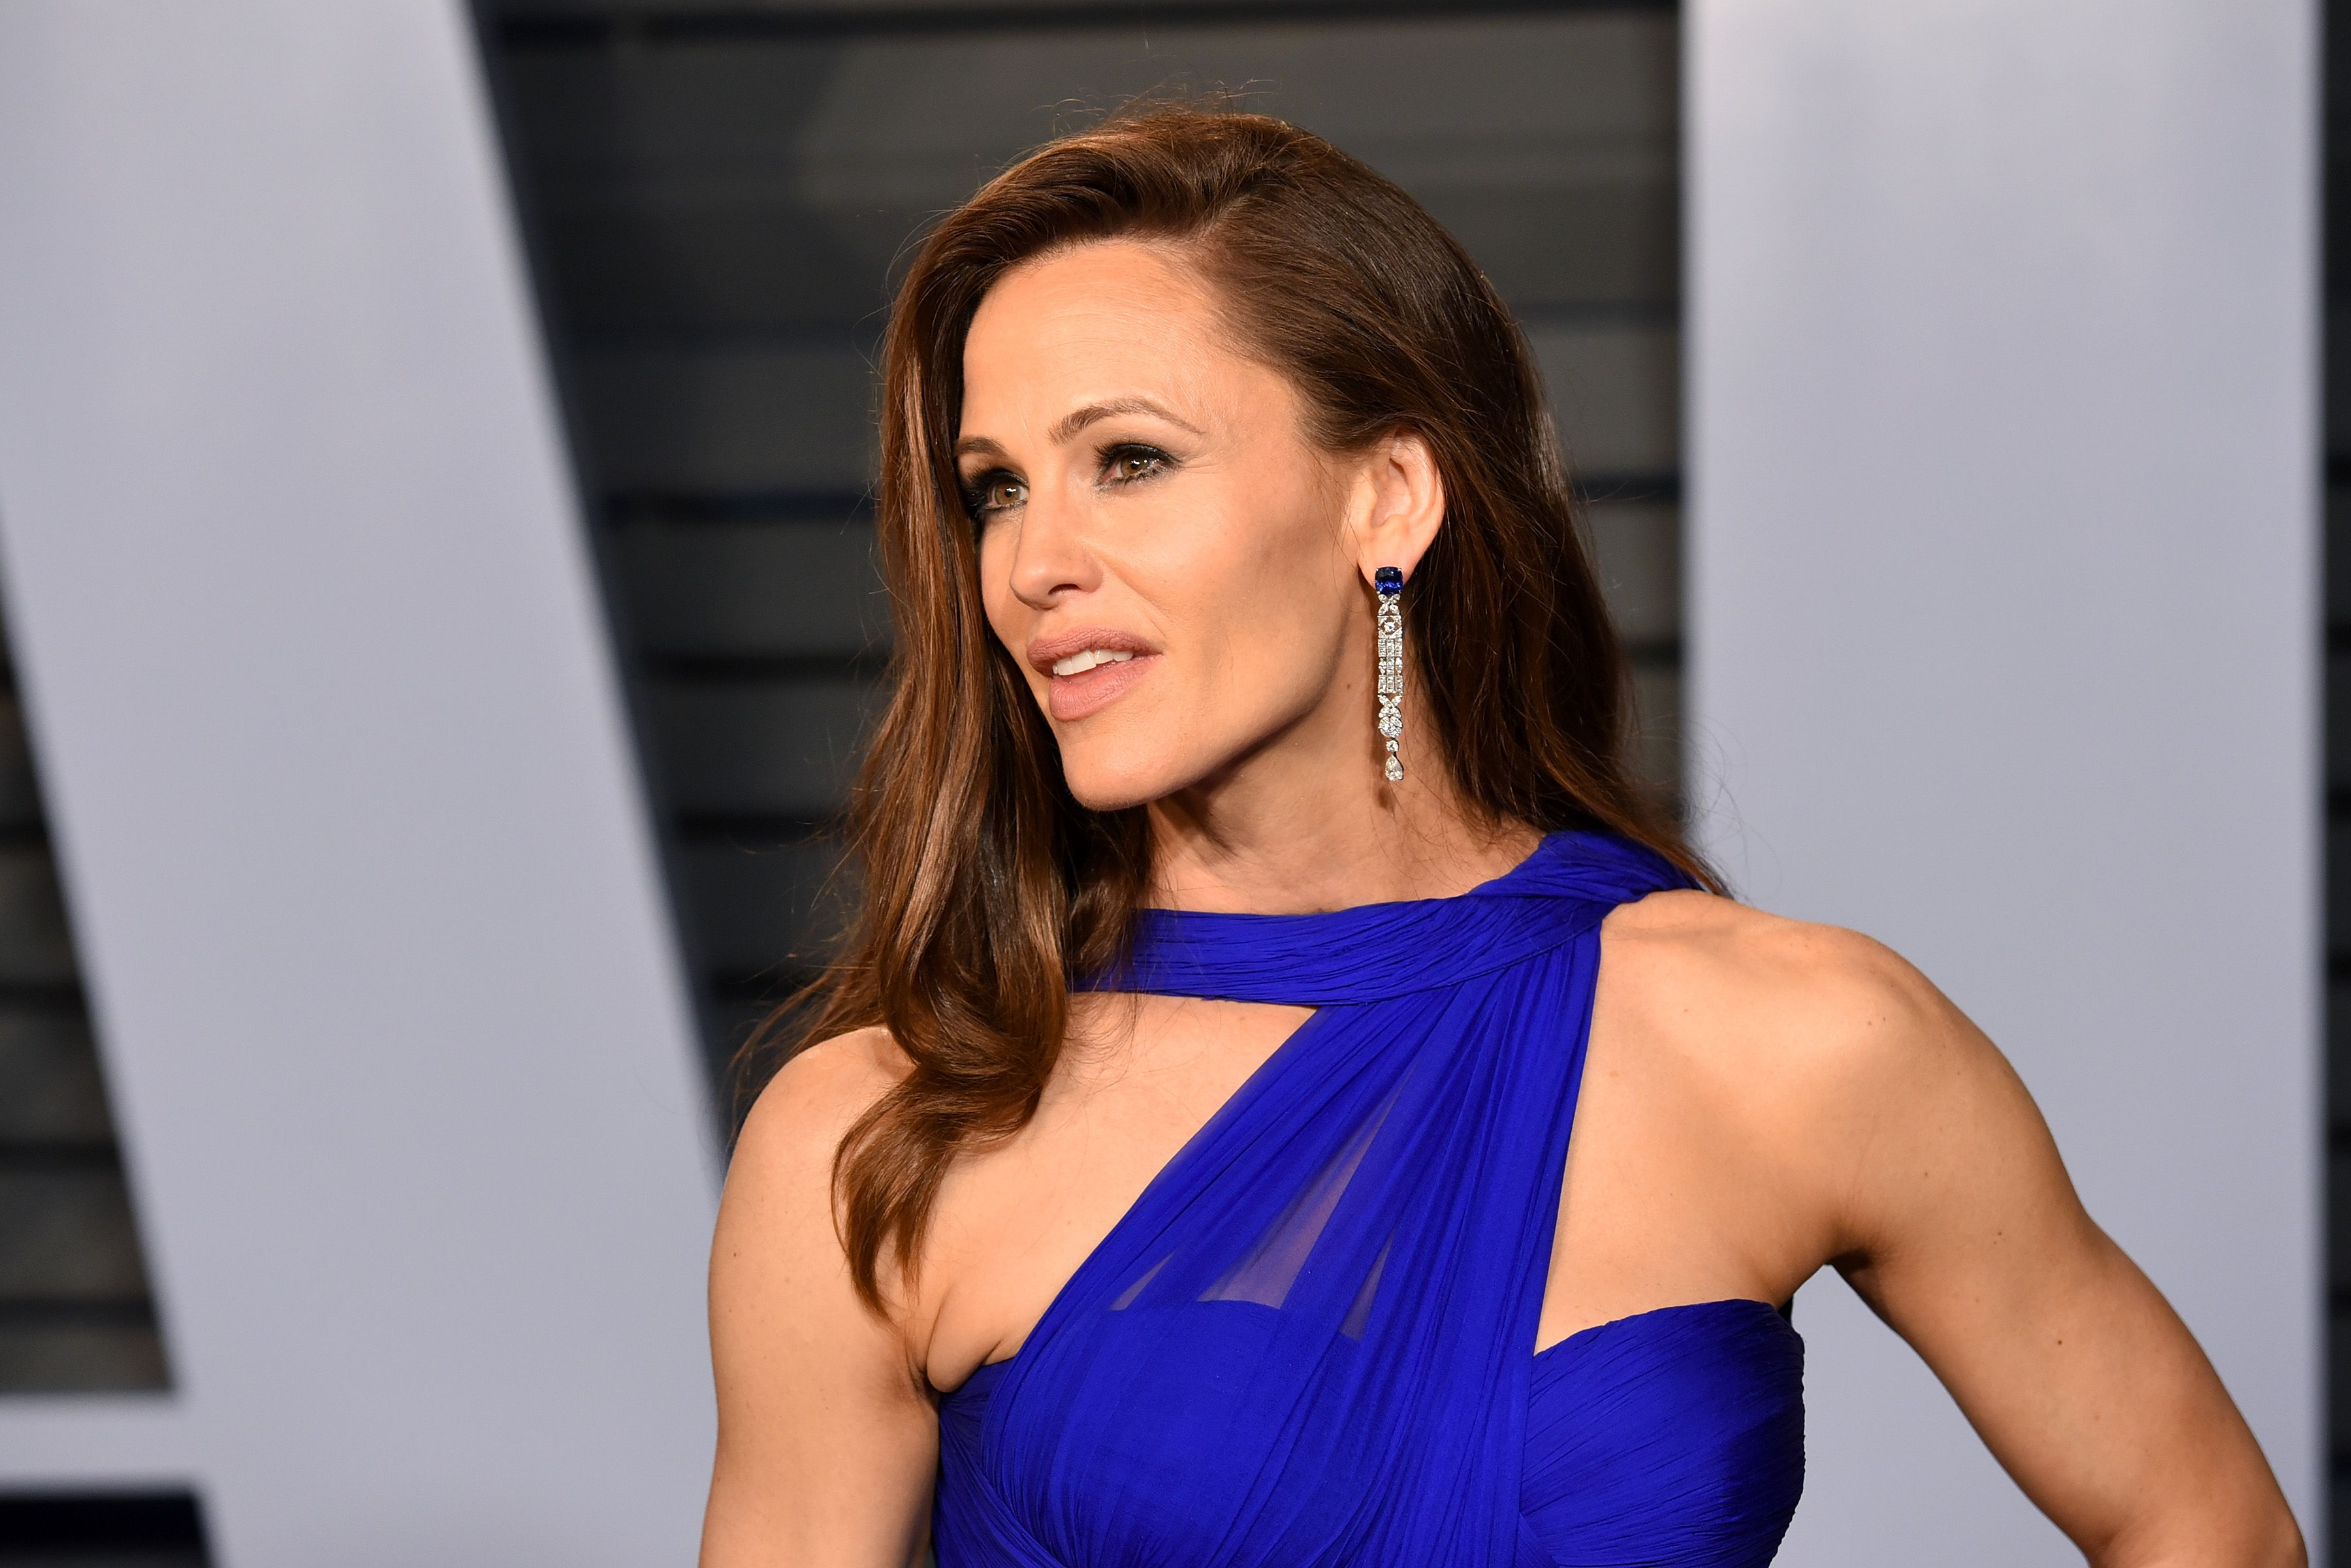 Jennifer Garner Says This 7 Facial Sunscreen Keeps Her Looking Young